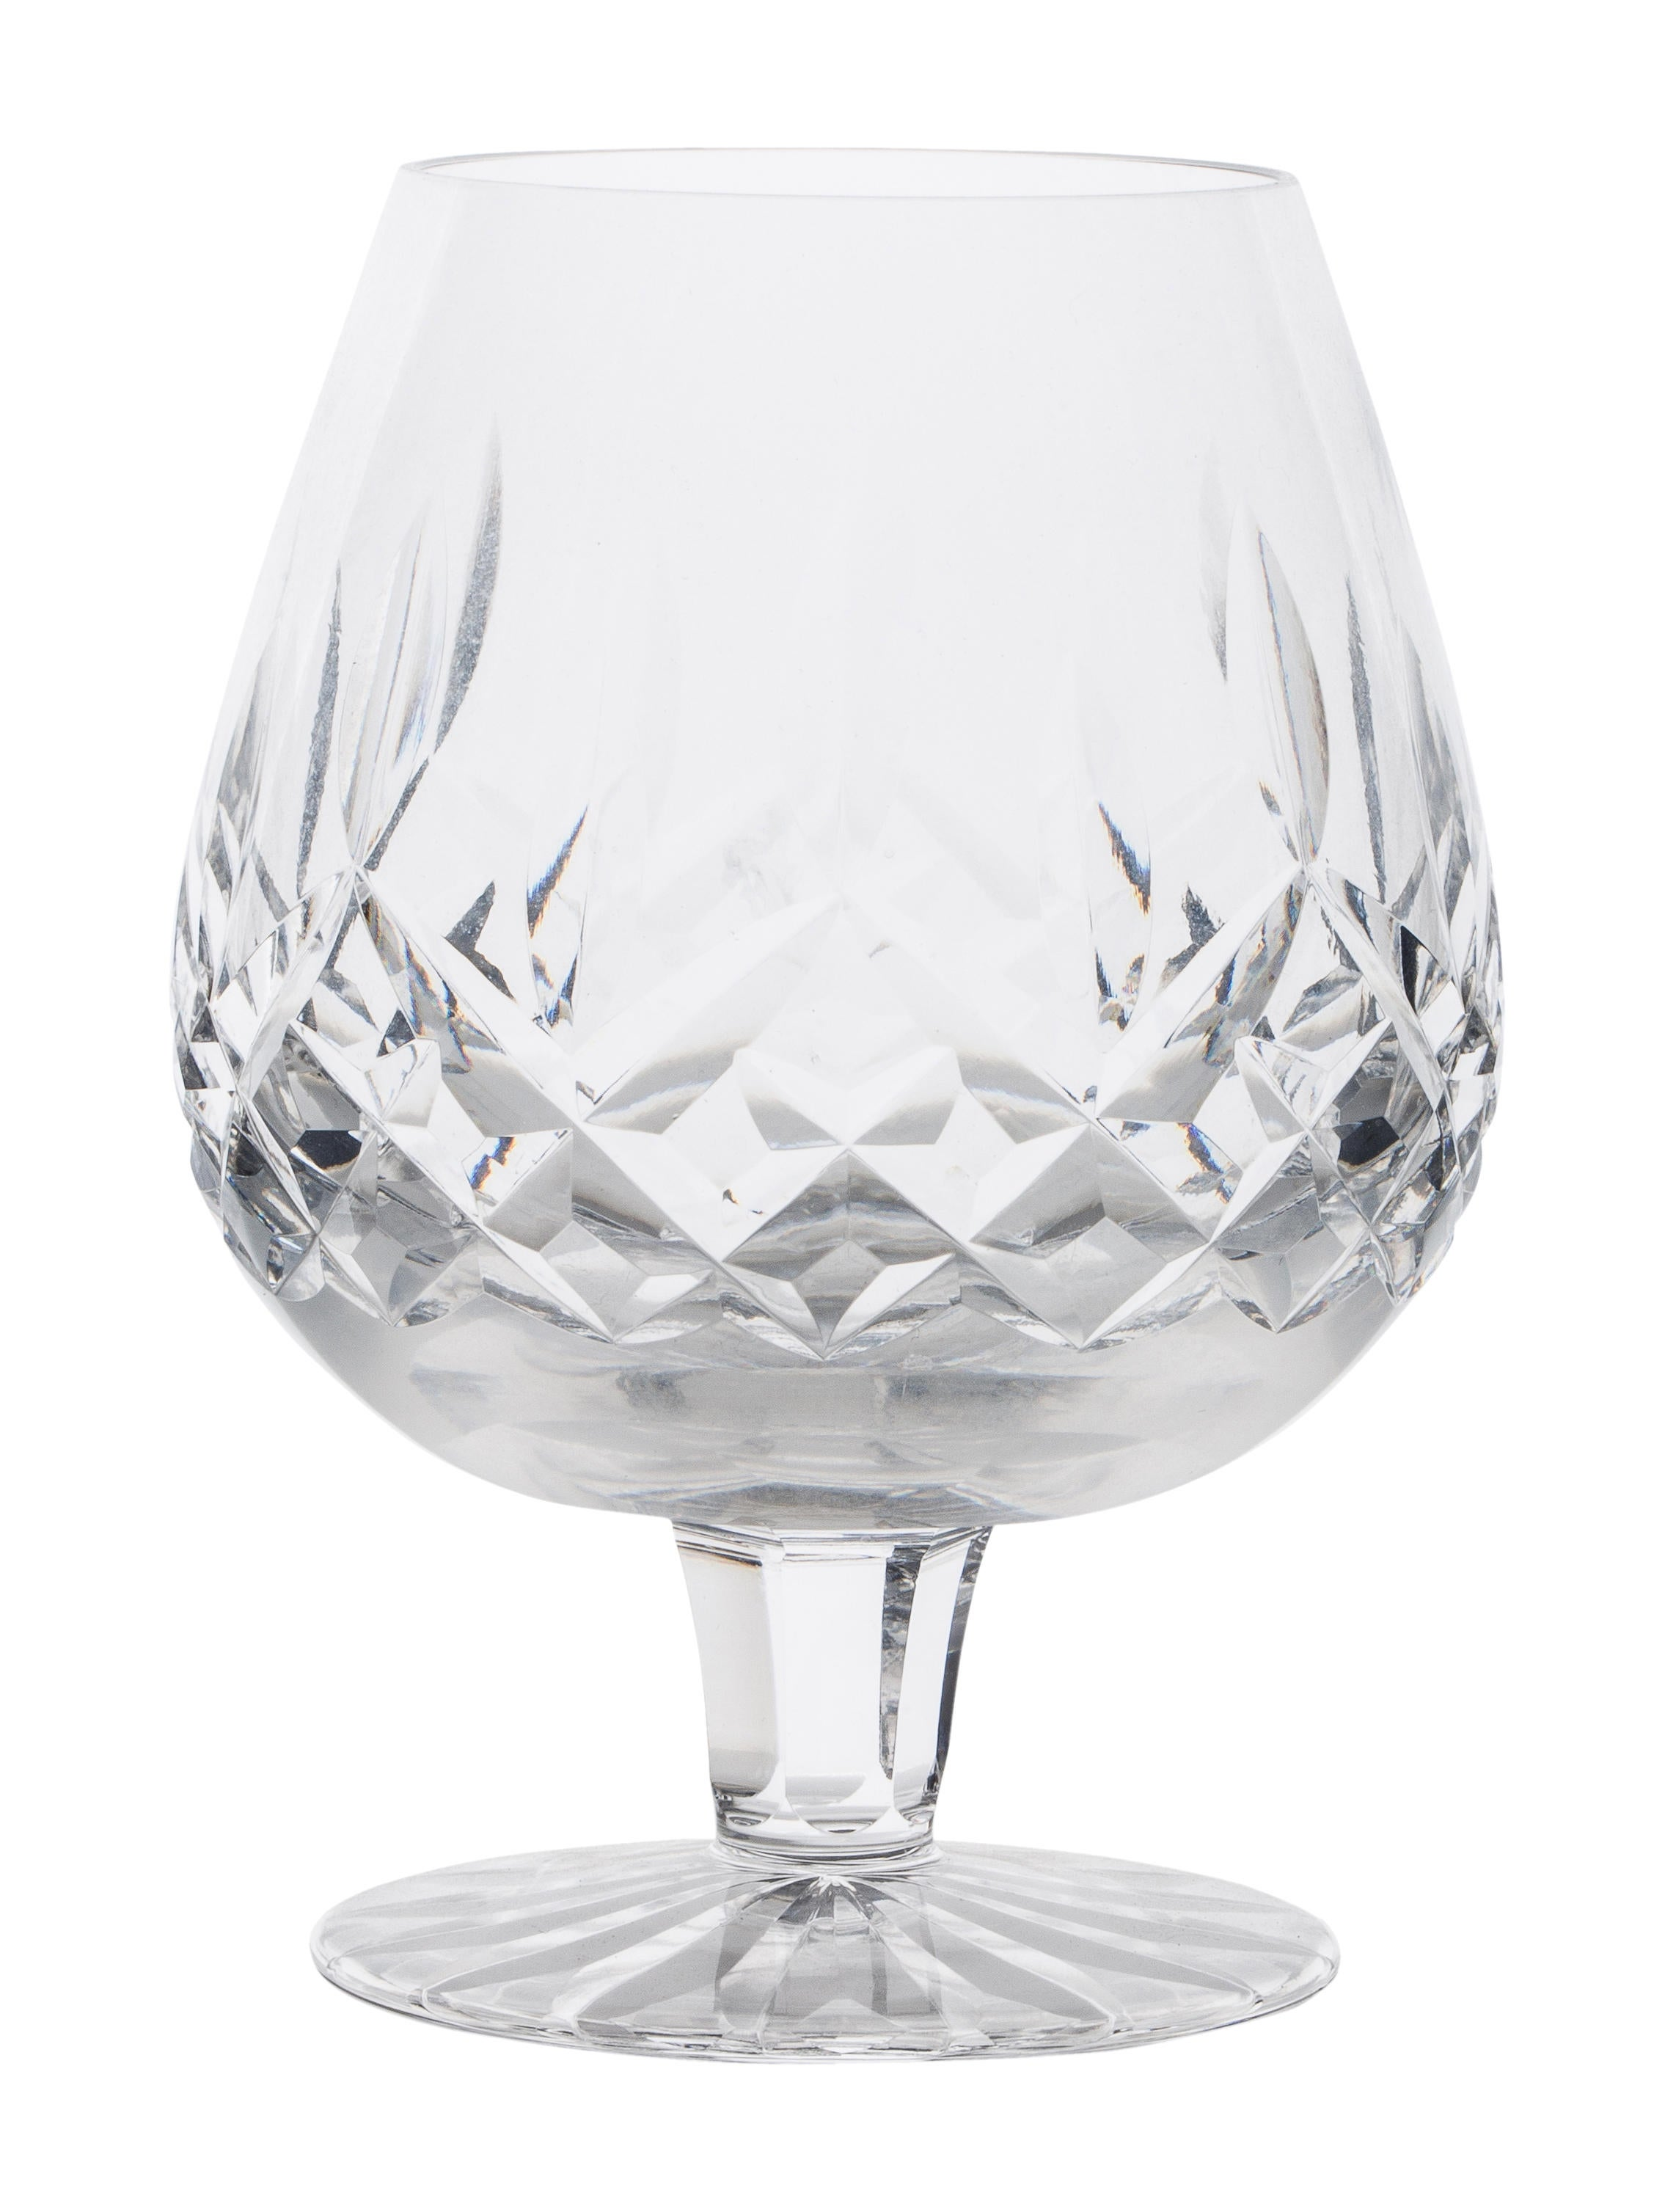 Waterford crystal cognac glasses tabletop and kitchen w5w20168 the realreal - Waterford cognac glasses ...